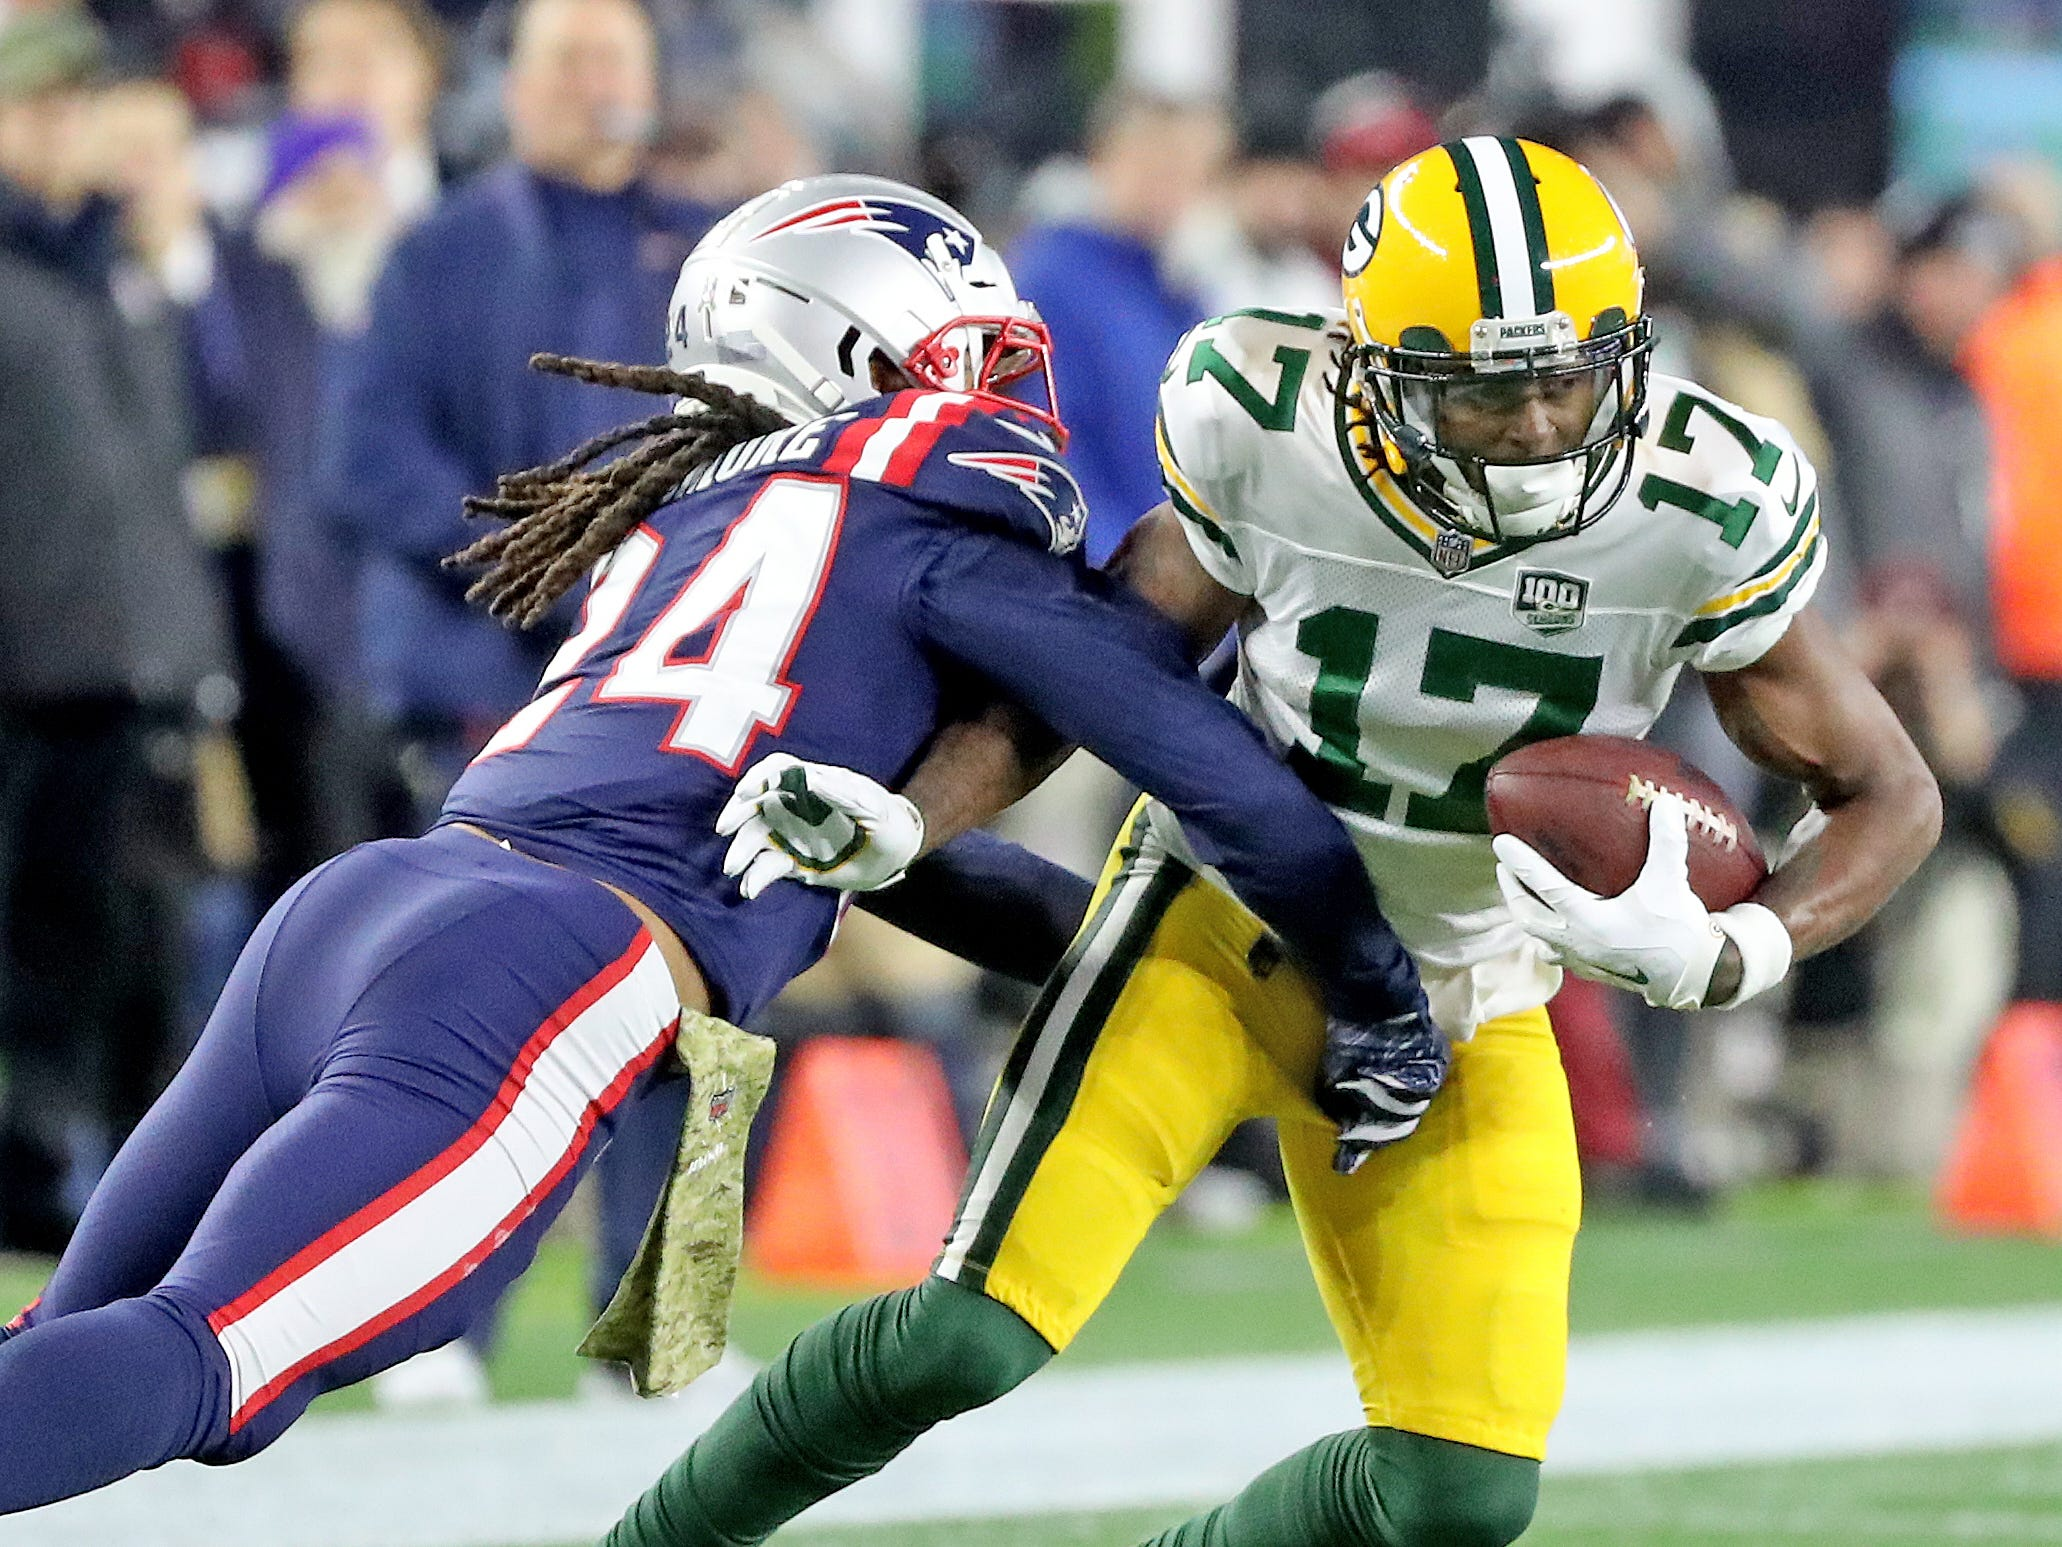 Green Bay Packers wide receiver Davante Adams (17) tries to move past cornerback Stephon Gilmore (24) after a reception against the New England Patriots Sunday, November 4, 2018 at Gillette Stadium in Foxborough, Mass.